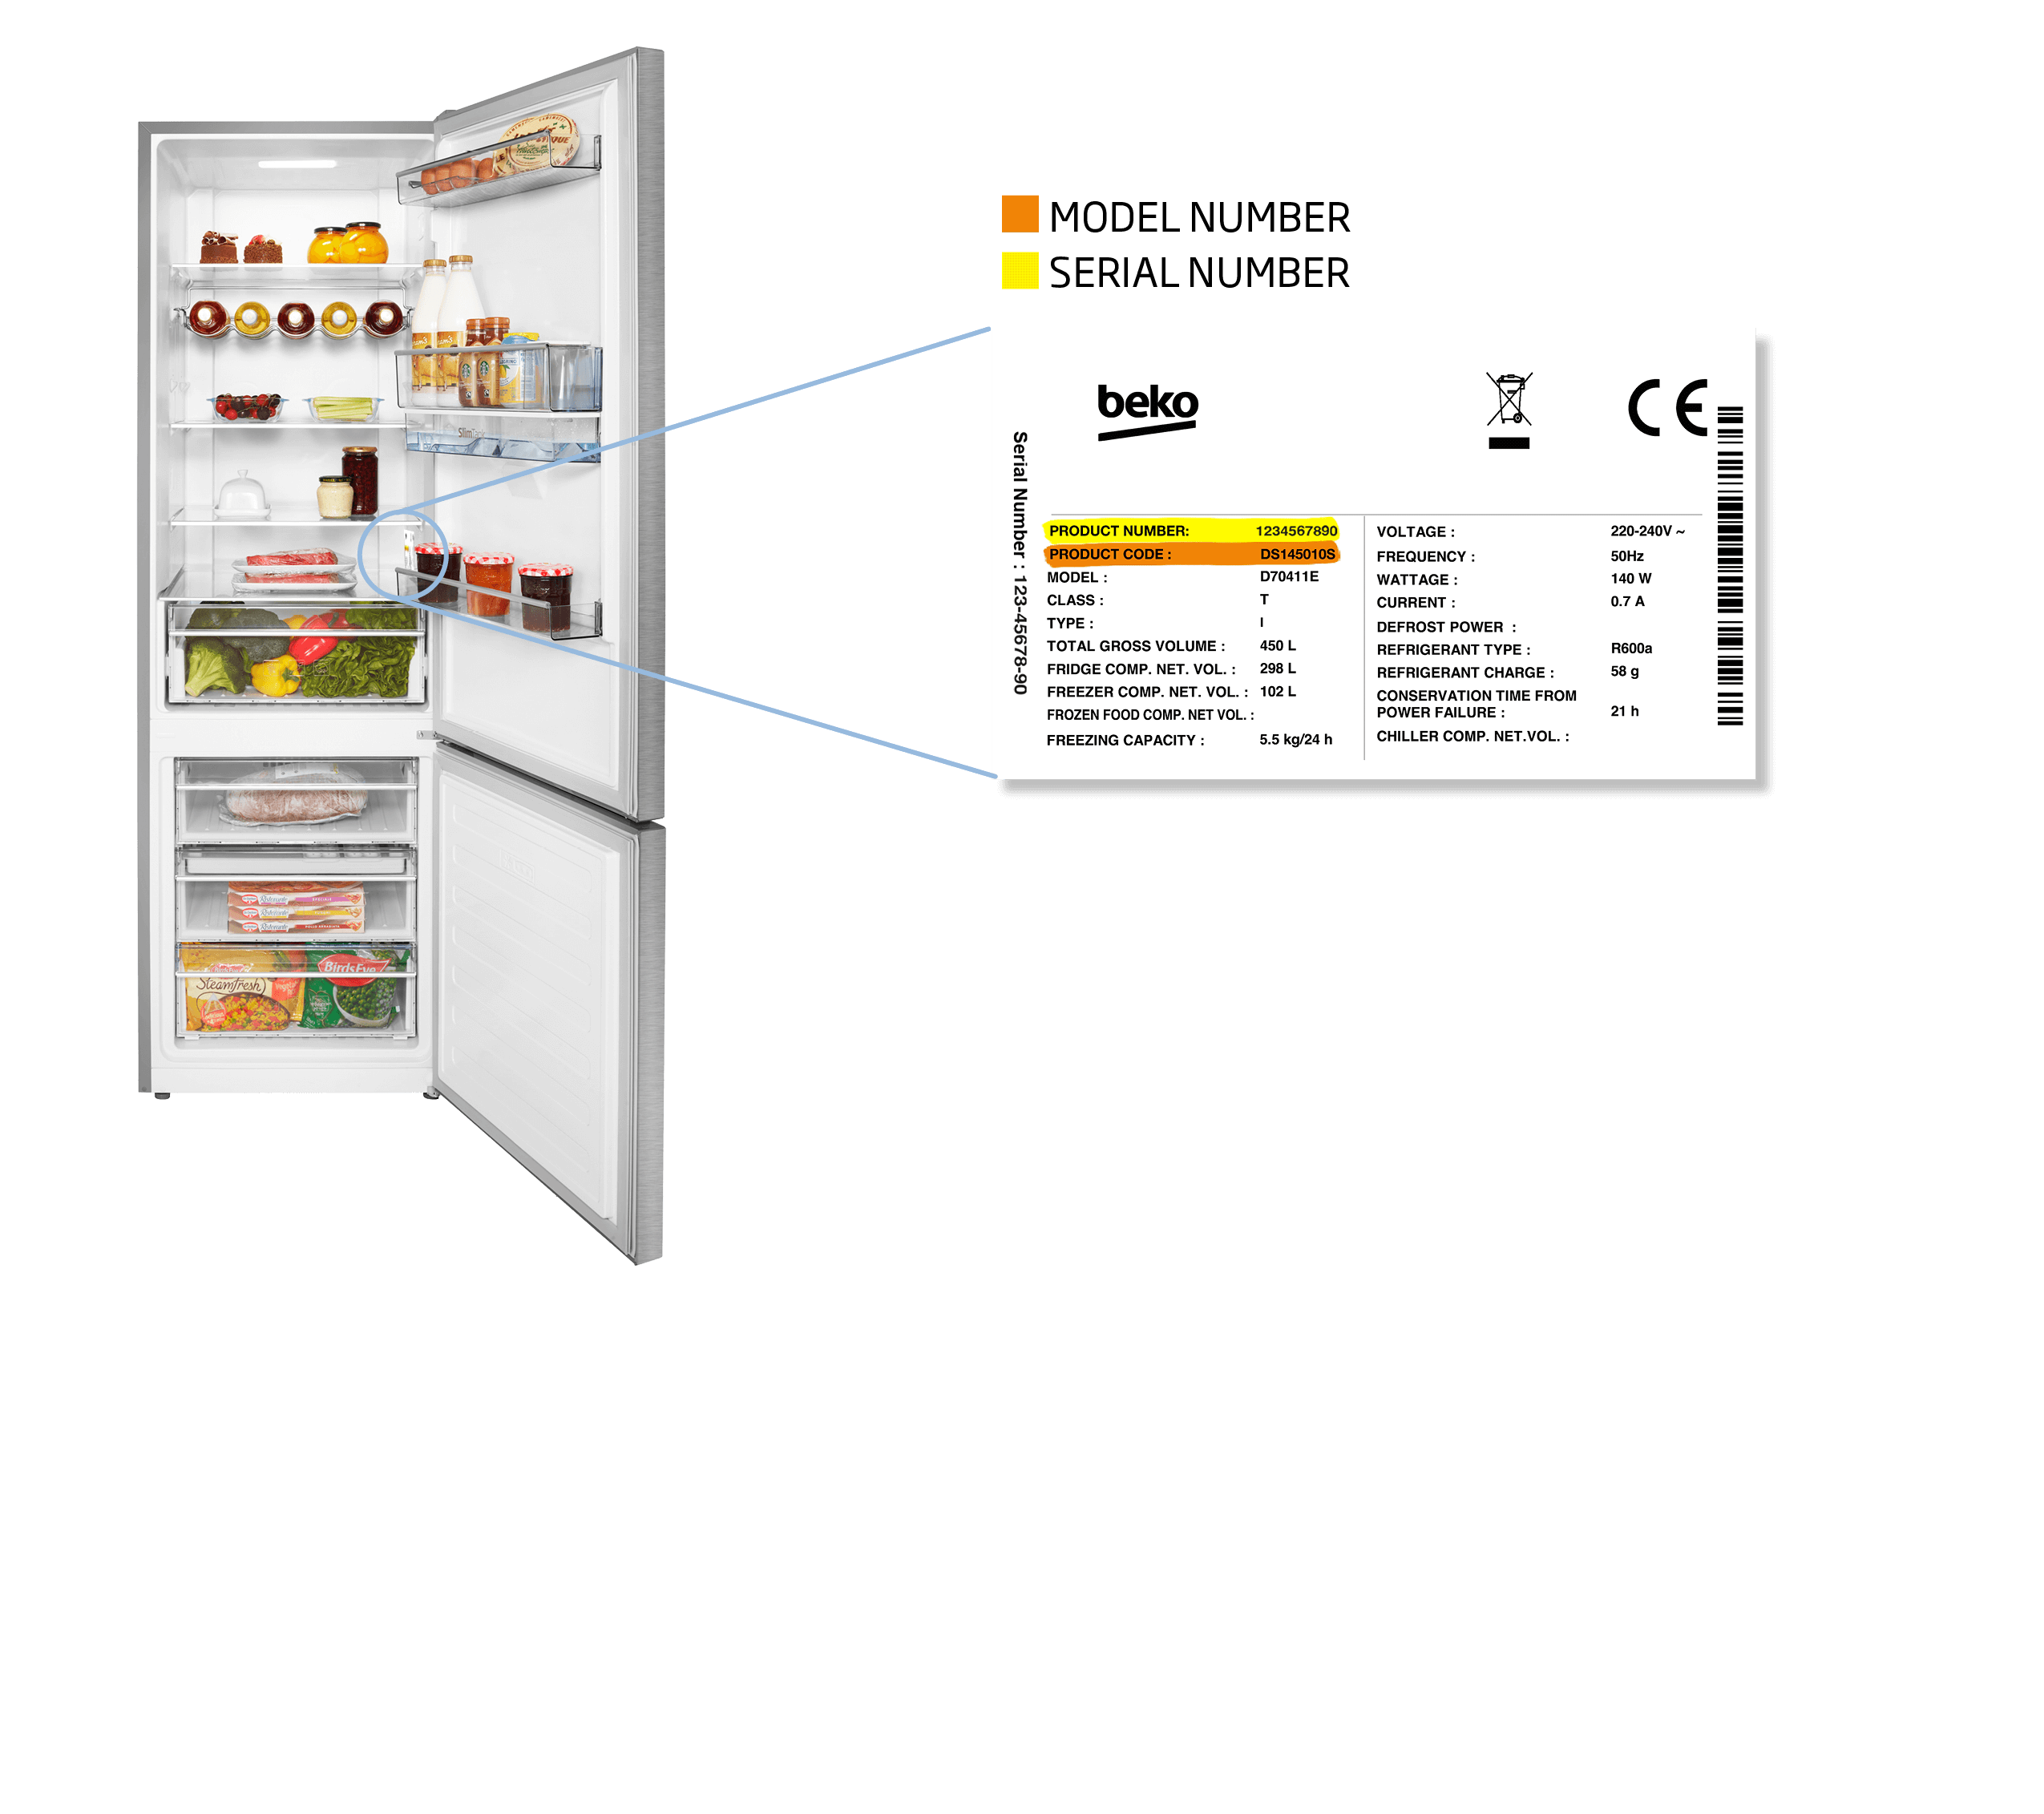 freezer bottom fridge freezer model number